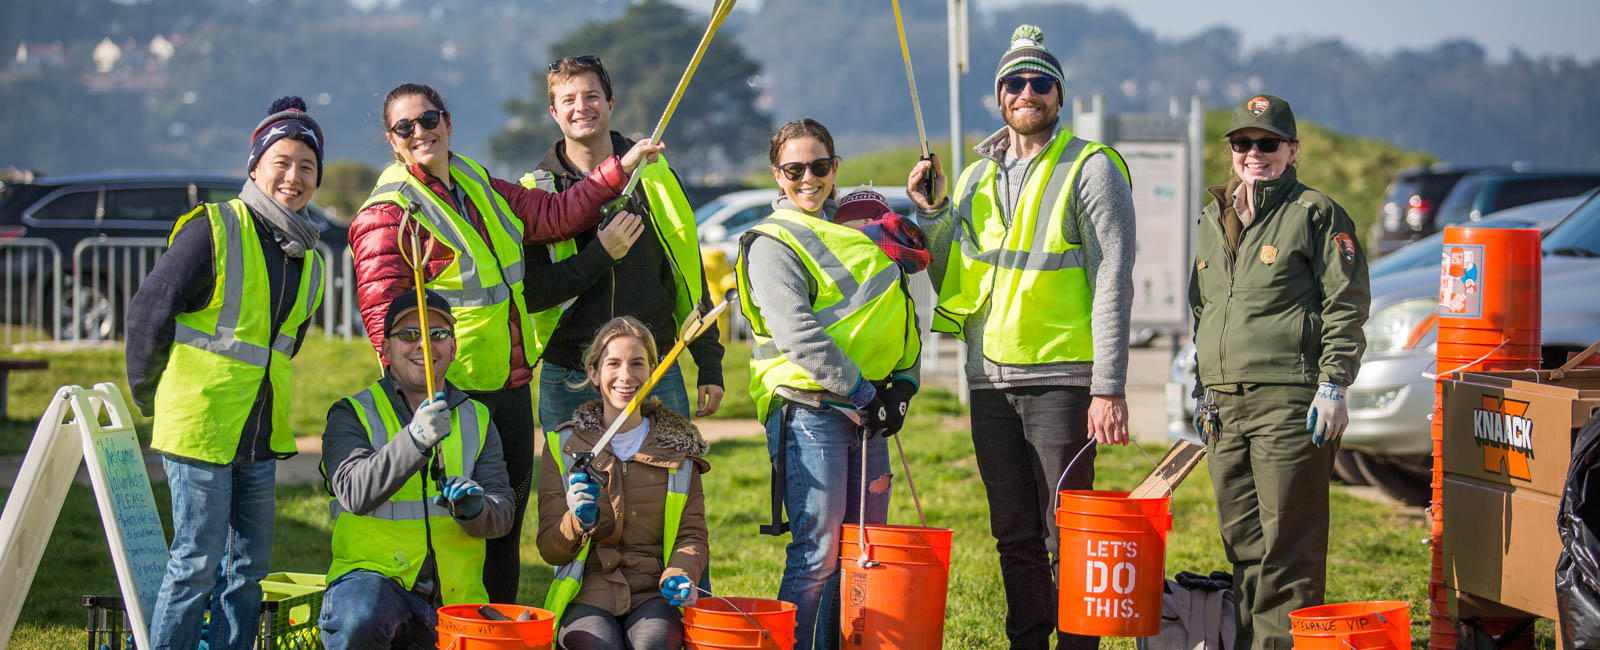 Golden Gate Maintenance Volunteers